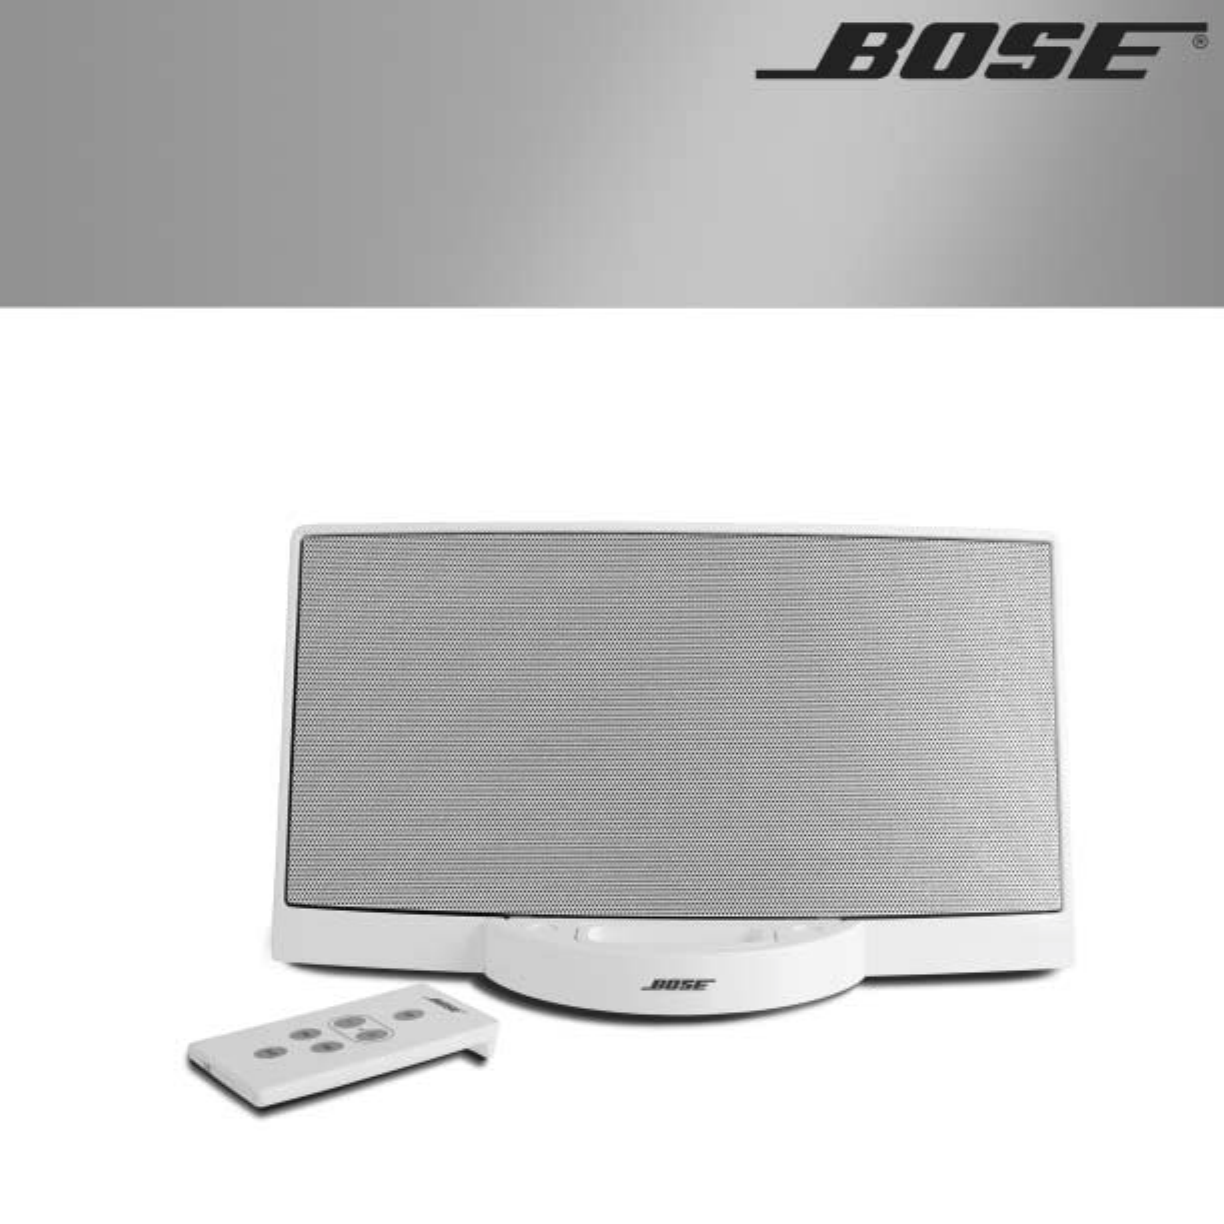 bose mp3 docking station sounddocktm digital music system user guide. Black Bedroom Furniture Sets. Home Design Ideas